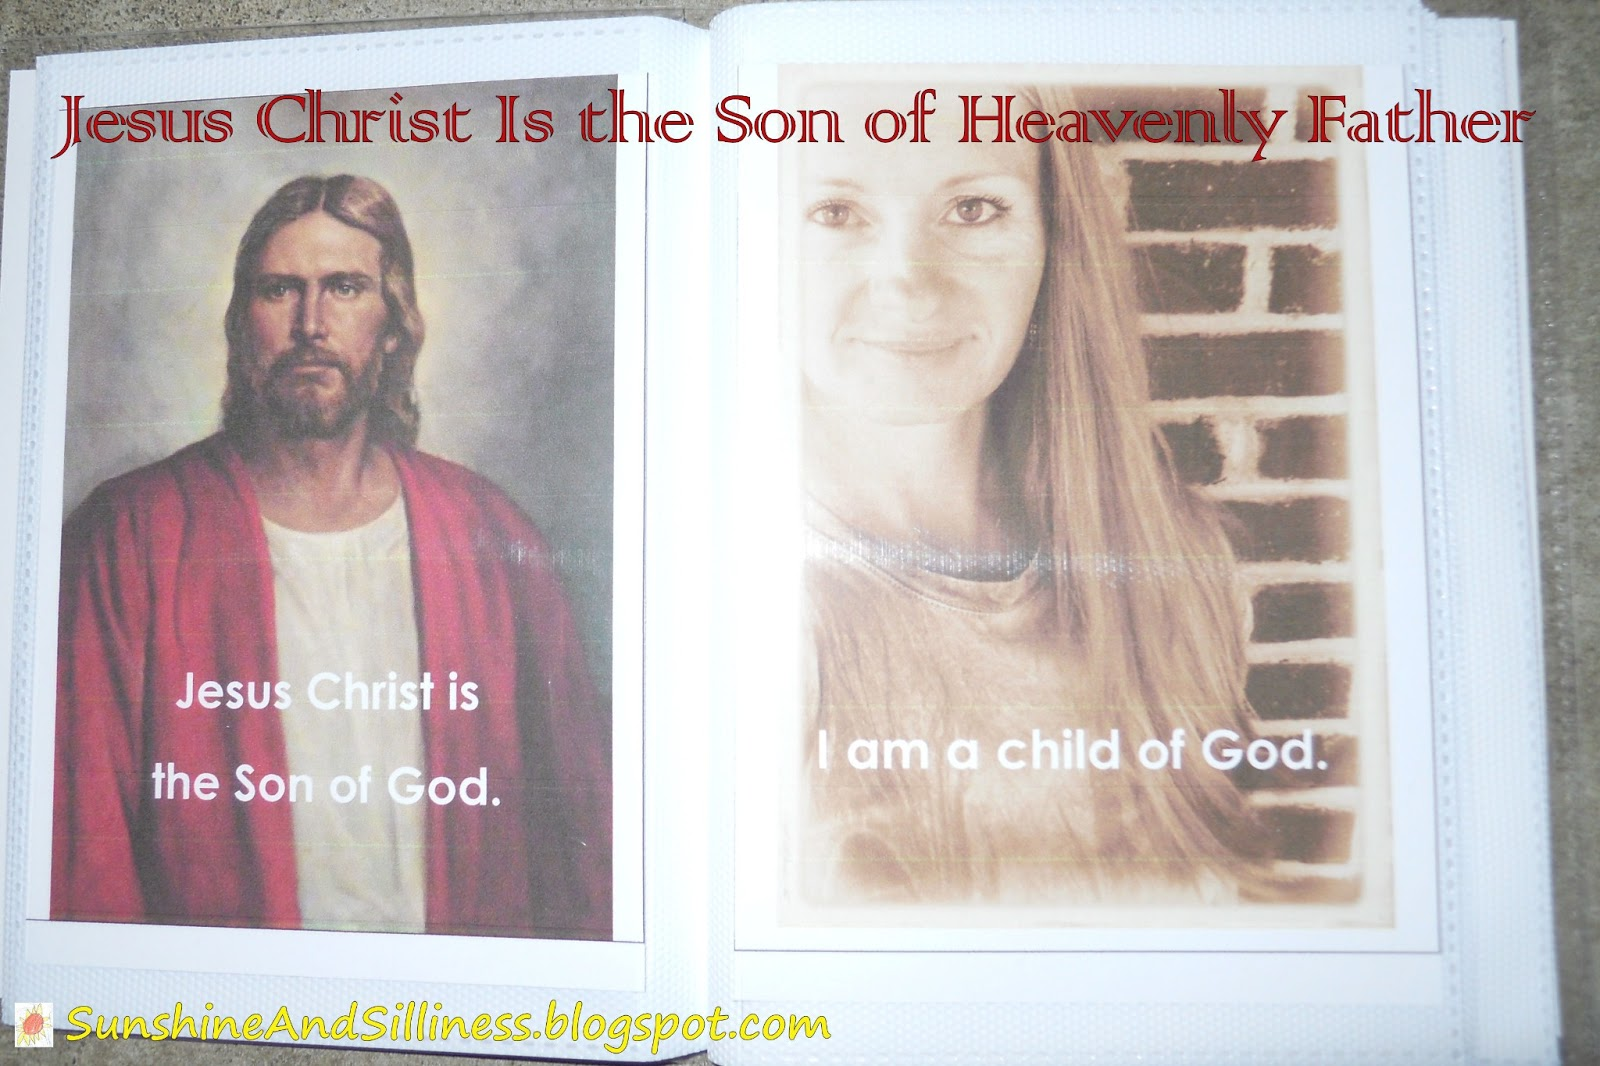 an essay on god the father and jesus christ If jesus was not a lunatic, then he forgave sins against god because he was god this is what his words and deeds pointed toward once he said, i and the father are one, which almost got him stoned on the spot (john 10:30-31.